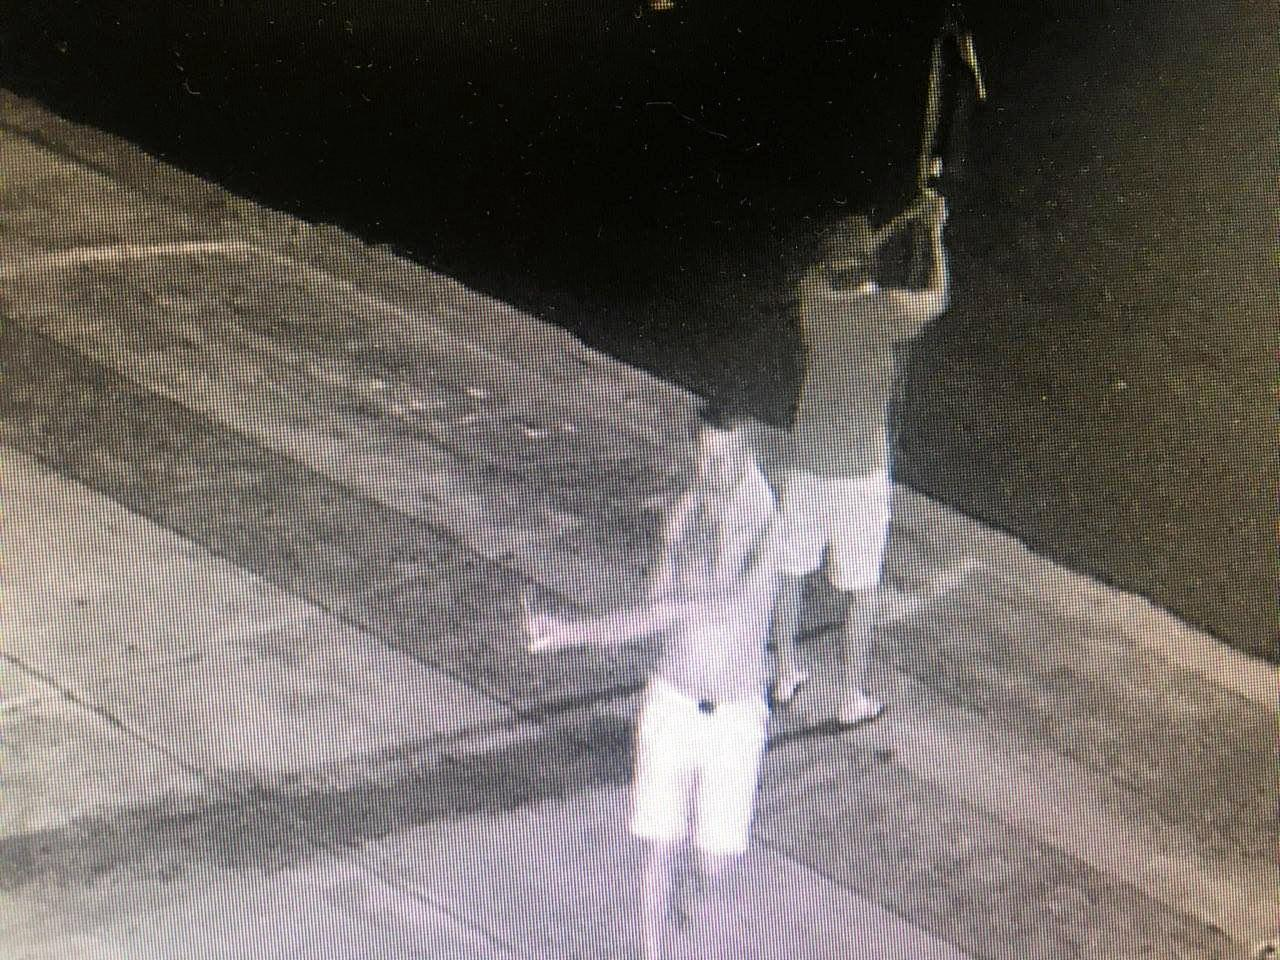 ASSIST INQUIRIES: Grafton Police are looking to speak to two men caught on CCTV in relation to a malicious damage incident on Prince St, Grafton.